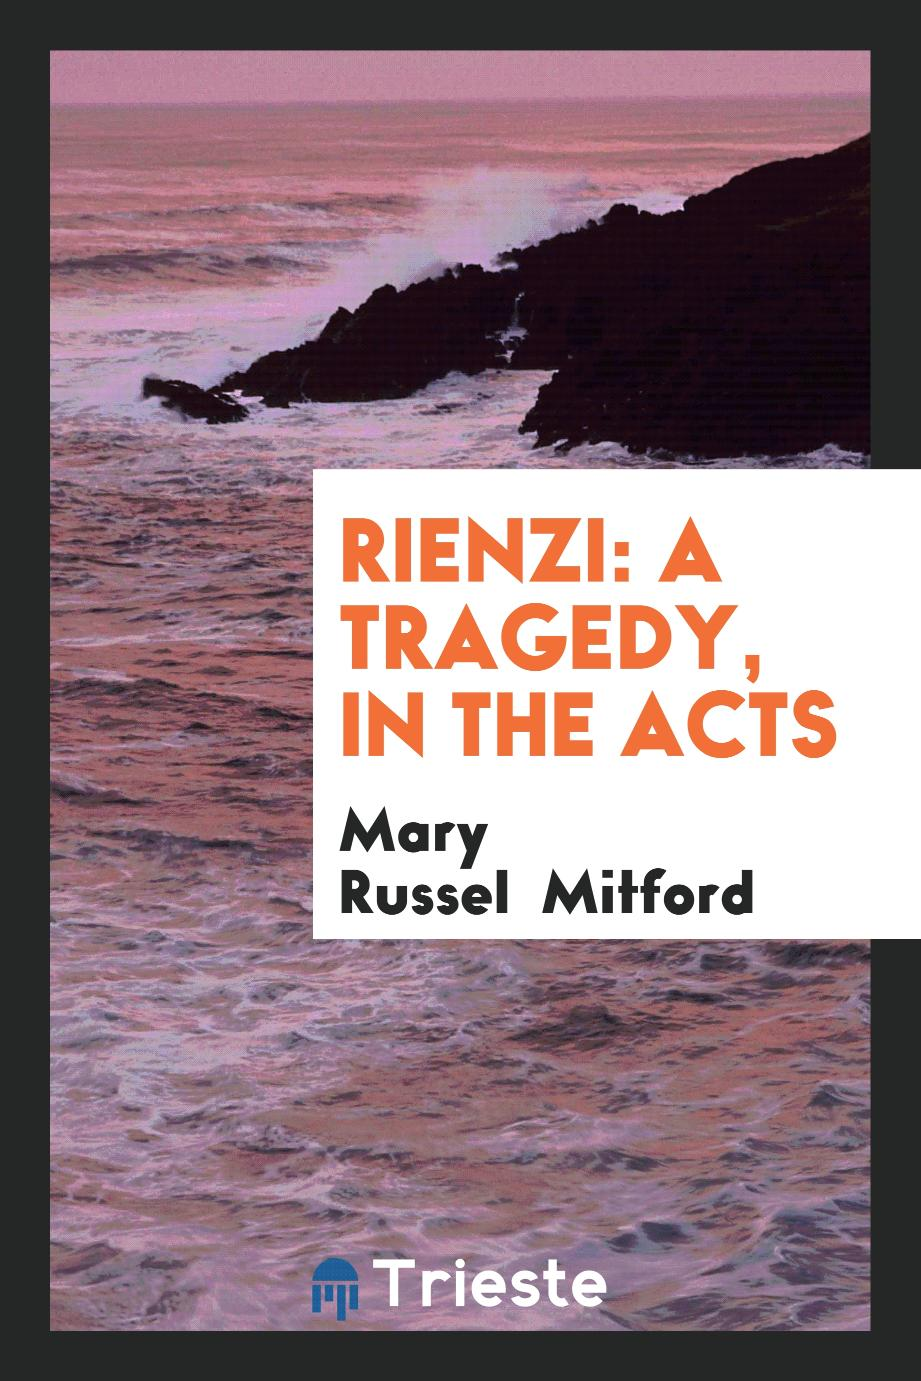 Rienzi: a tragedy, in the acts